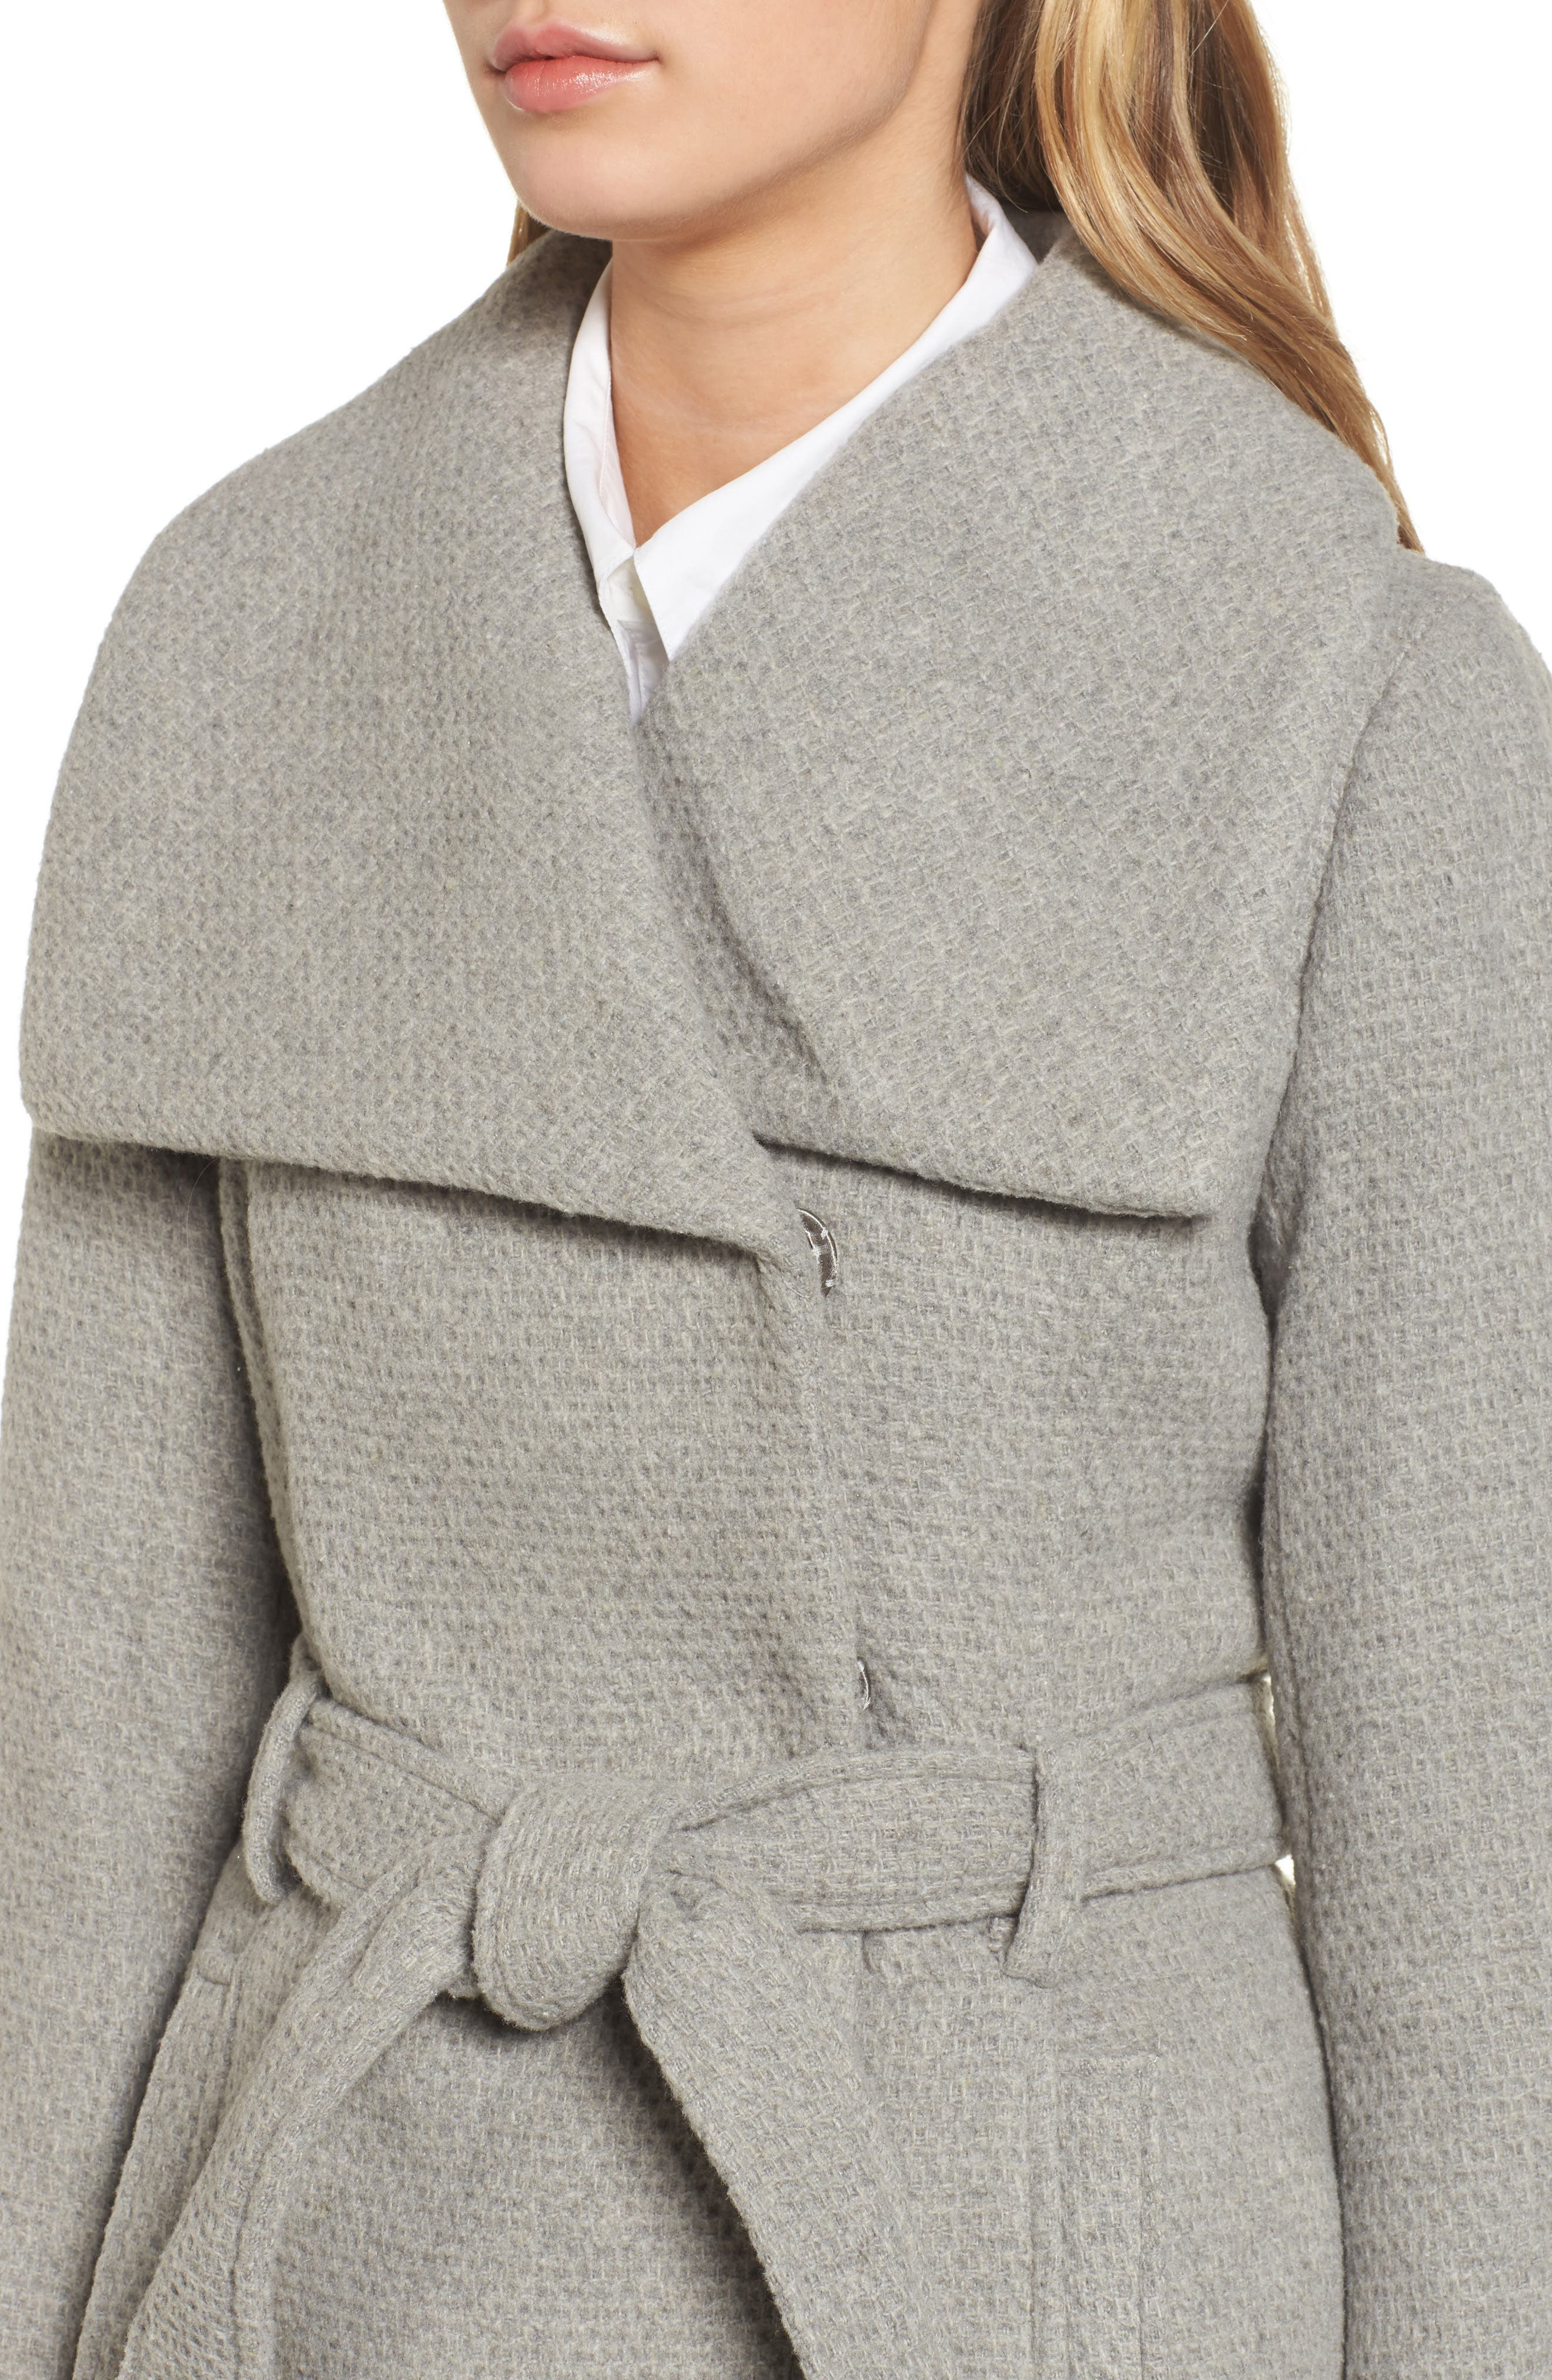 Belted Waffle Woven Coat,                             Alternate thumbnail 4, color,                             038